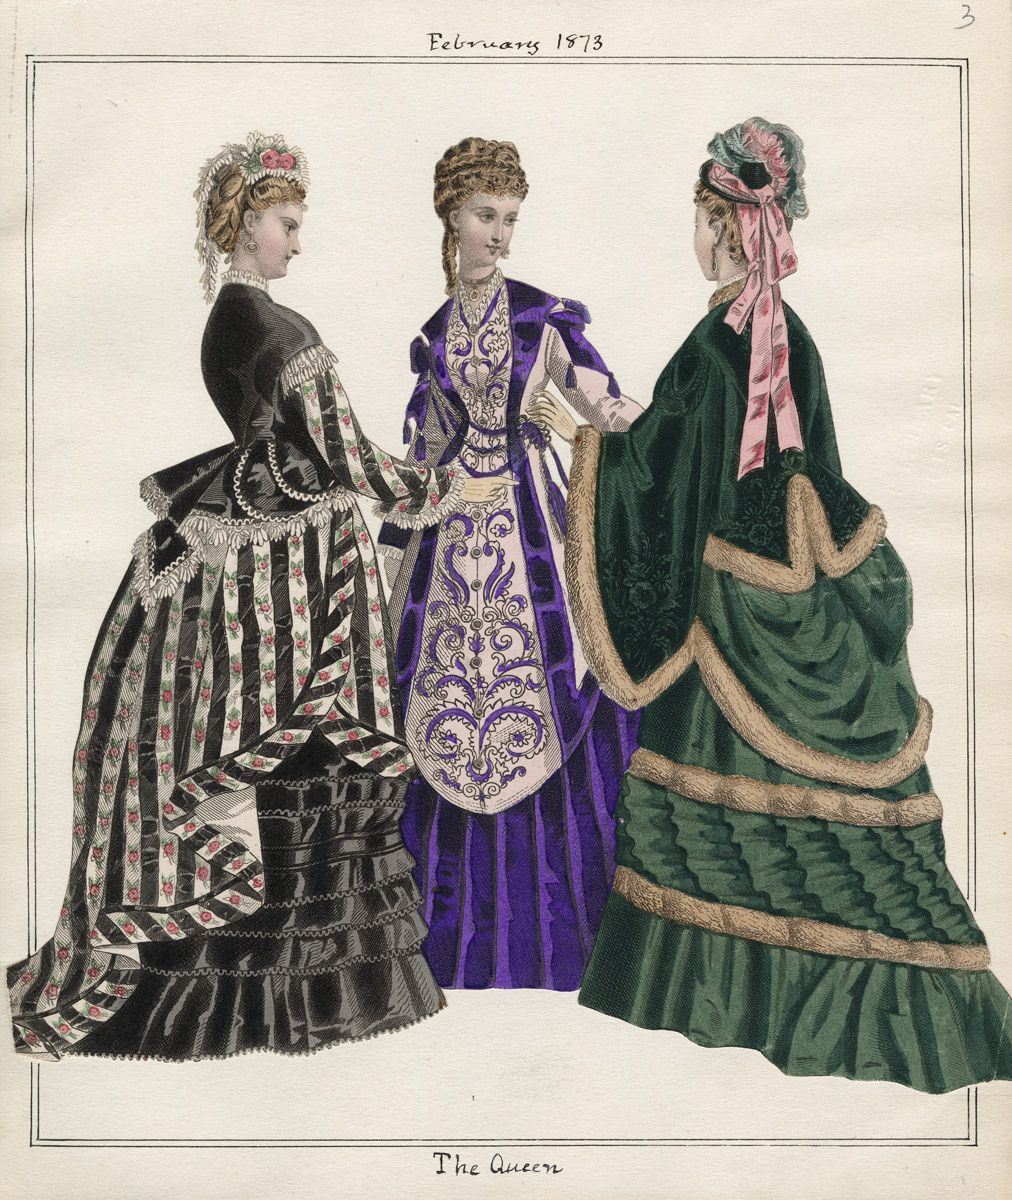 Casey Fashion Plates Detail | Los Angeles Public Library The Queen Date: Saturday, February 1, 1873